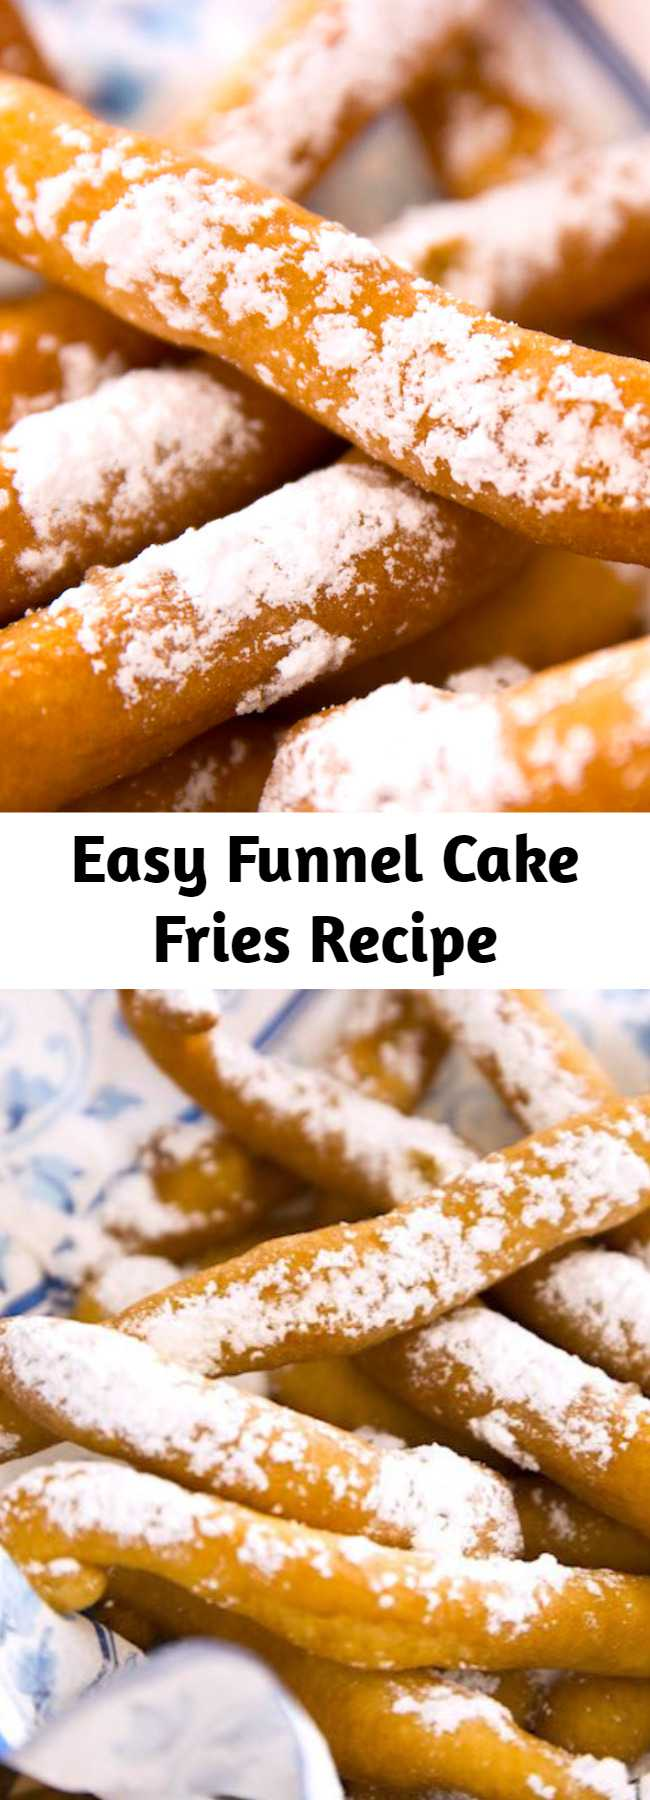 Easy Funnel Cake Fries Recipe - Funnel Cake Fries are a mouthwatering snack that's crispy on the outside and fluffy on the inside. Make them at home in just 20 minutes and serve with caramel sauce or marshmallow fluff. Perfect for parties!